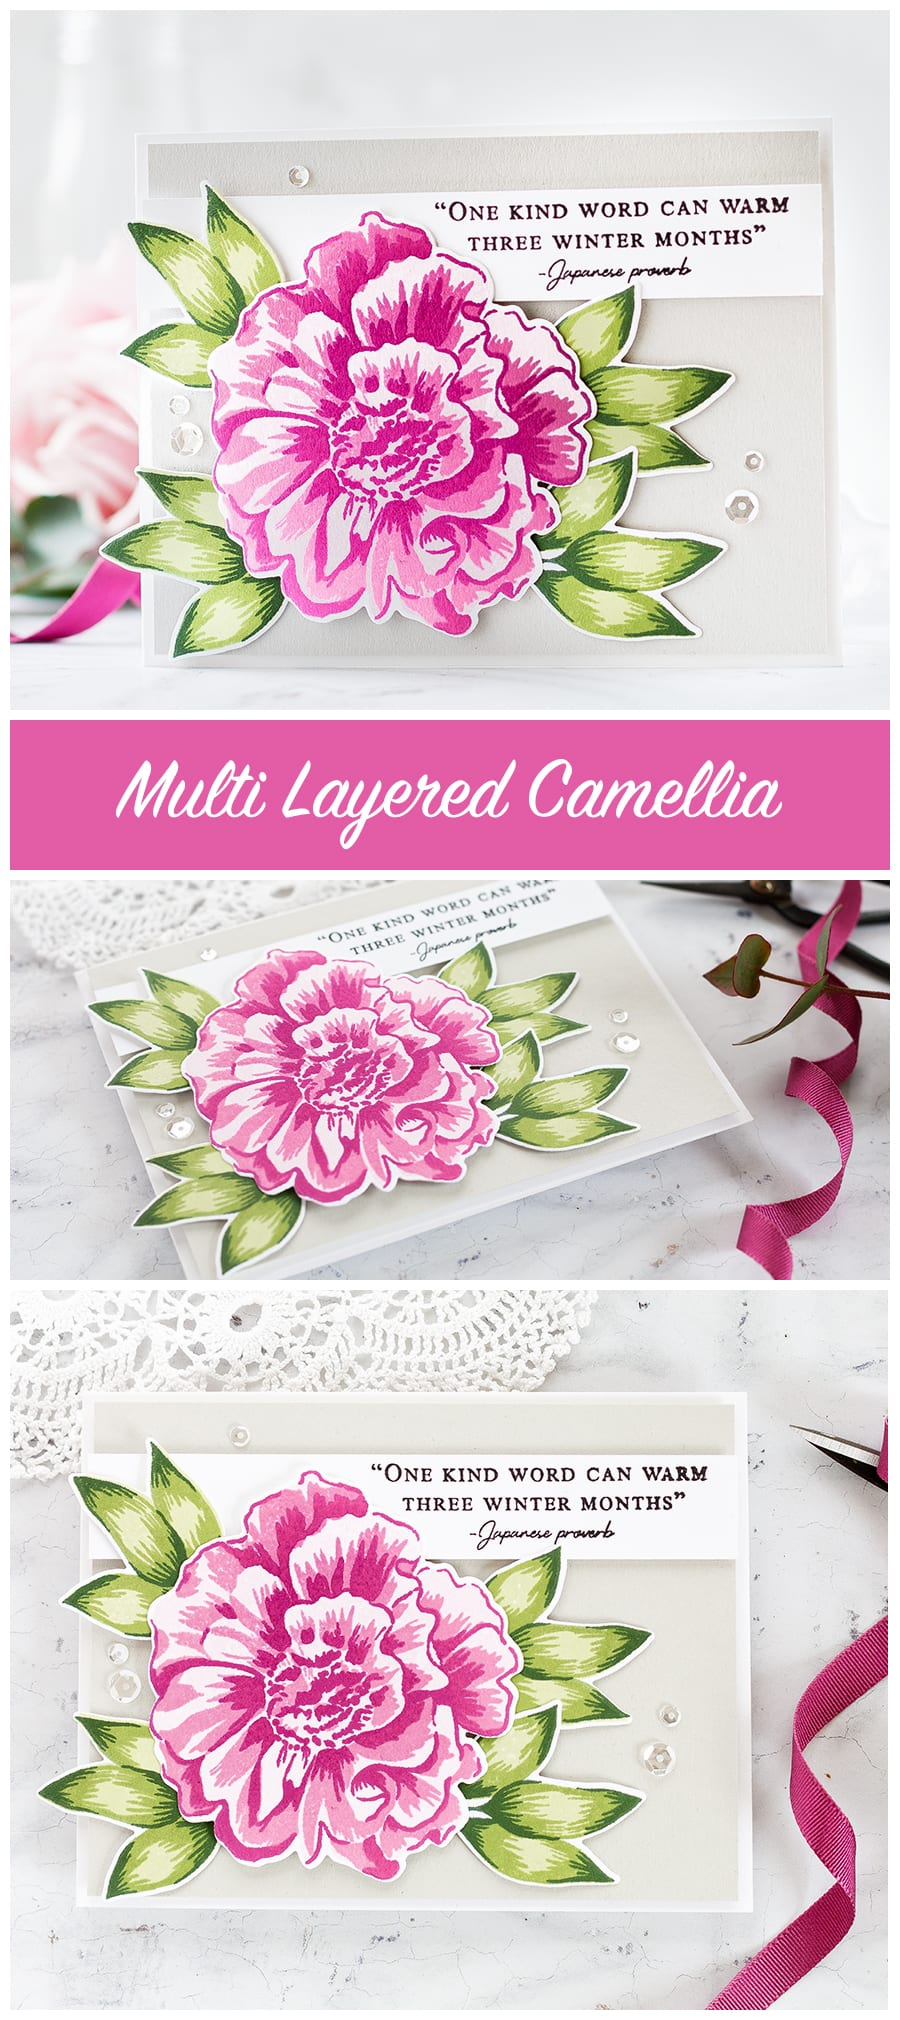 Altenew Build A Flower: Camellia card by Debby Hughes. Find out more about this card by clicking on the following link: https://limedoodledesign.com/2017/03/video-altenew-build-a-flower-camellia-giveaway-winner/